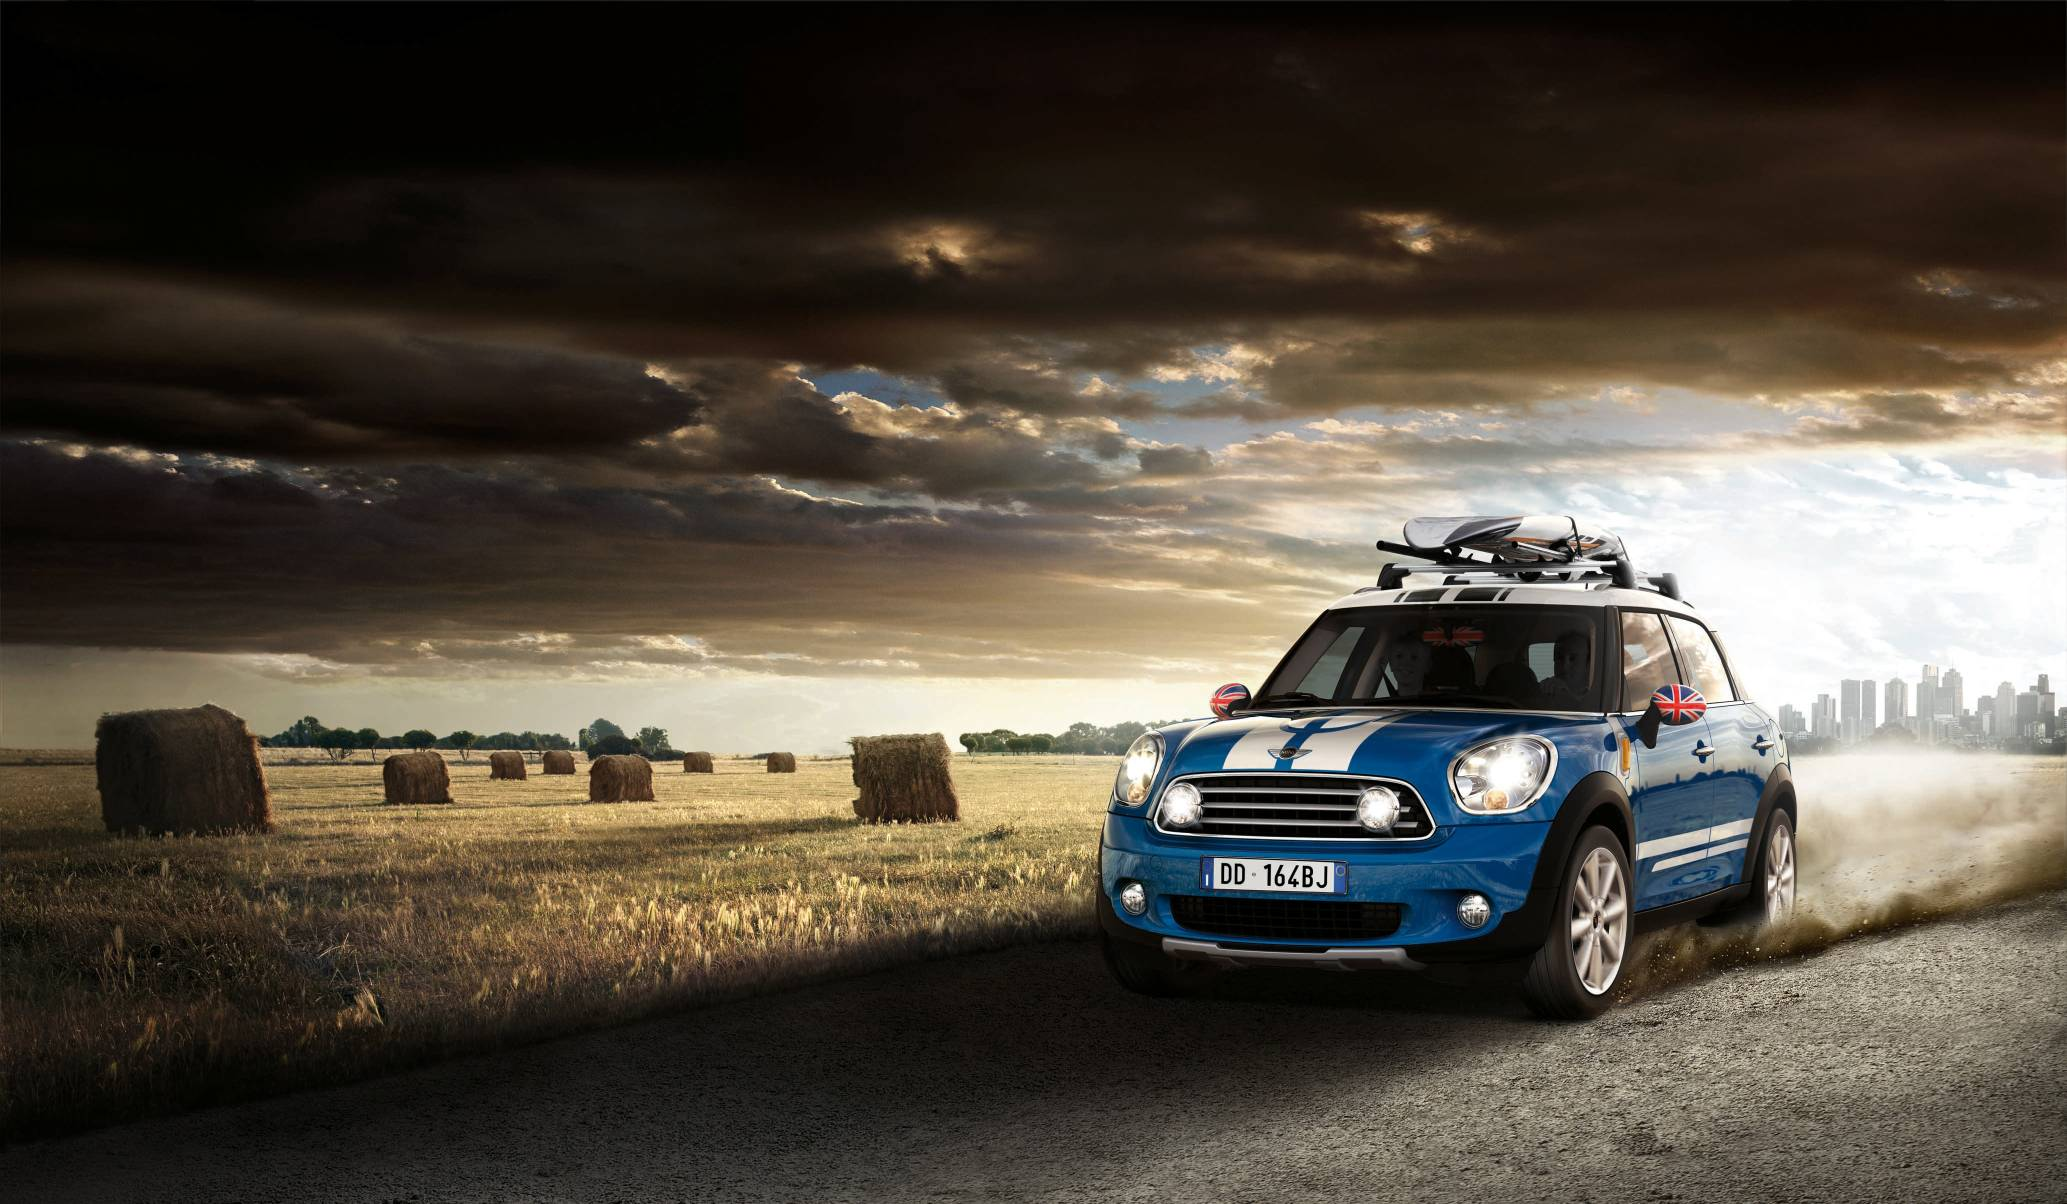 Mini Cooper Hd Wallpapers For Mobile